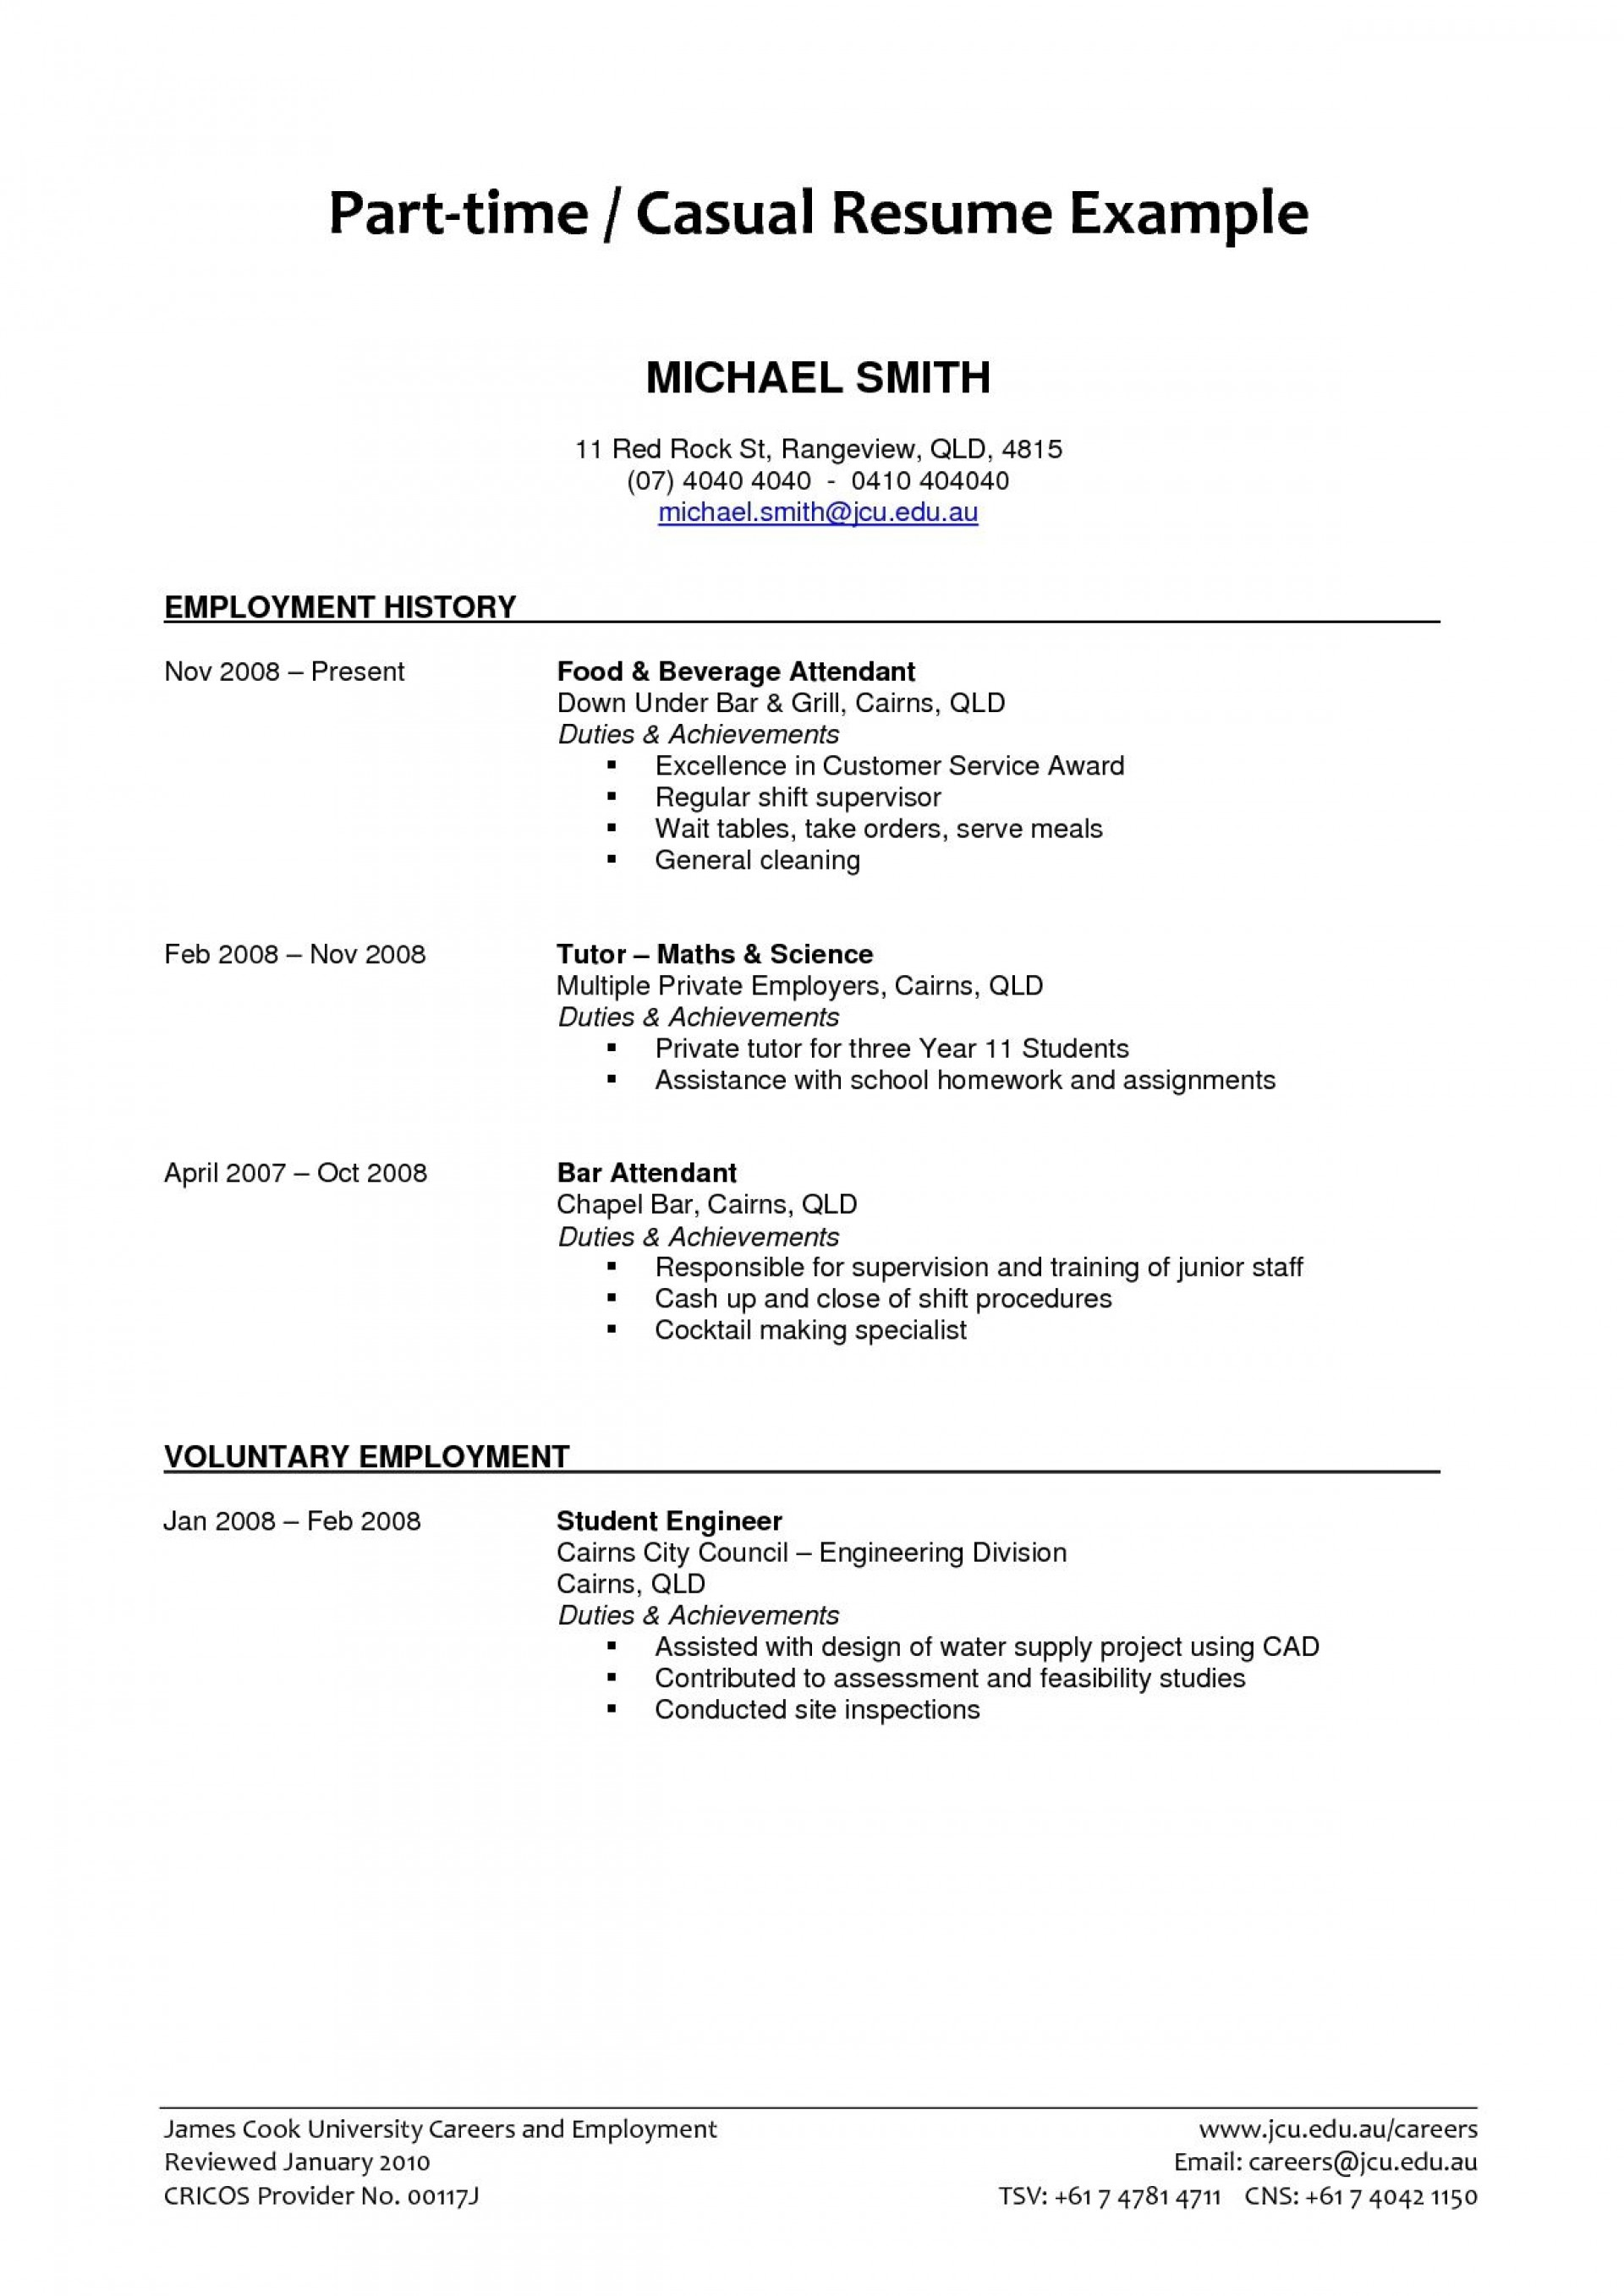 004 Unbelievable Part Time Job Resume Template Example  Student Summary1920